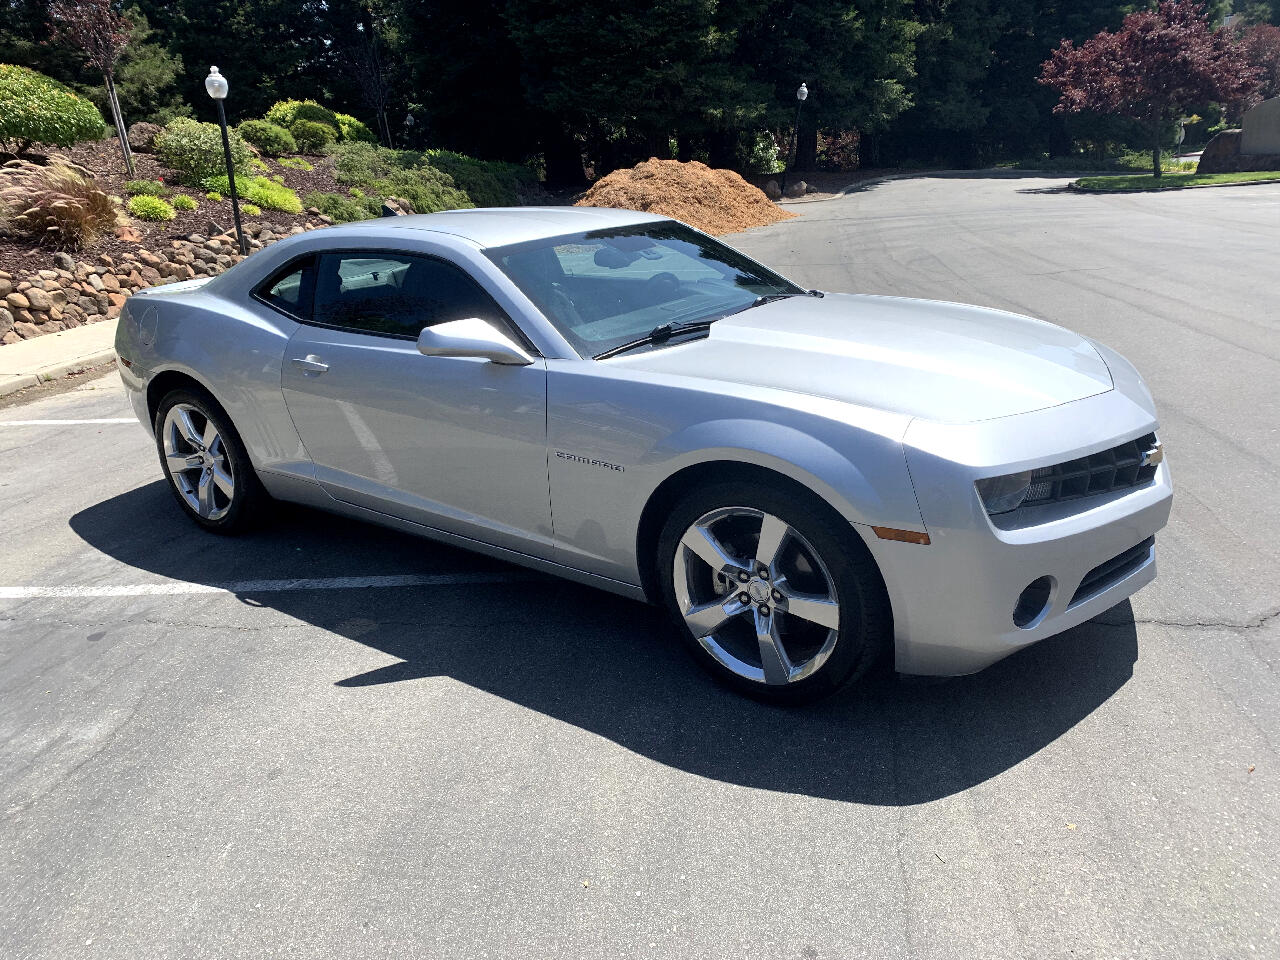 2010 Chevrolet Camaro LT COUPE RS PACKAGE